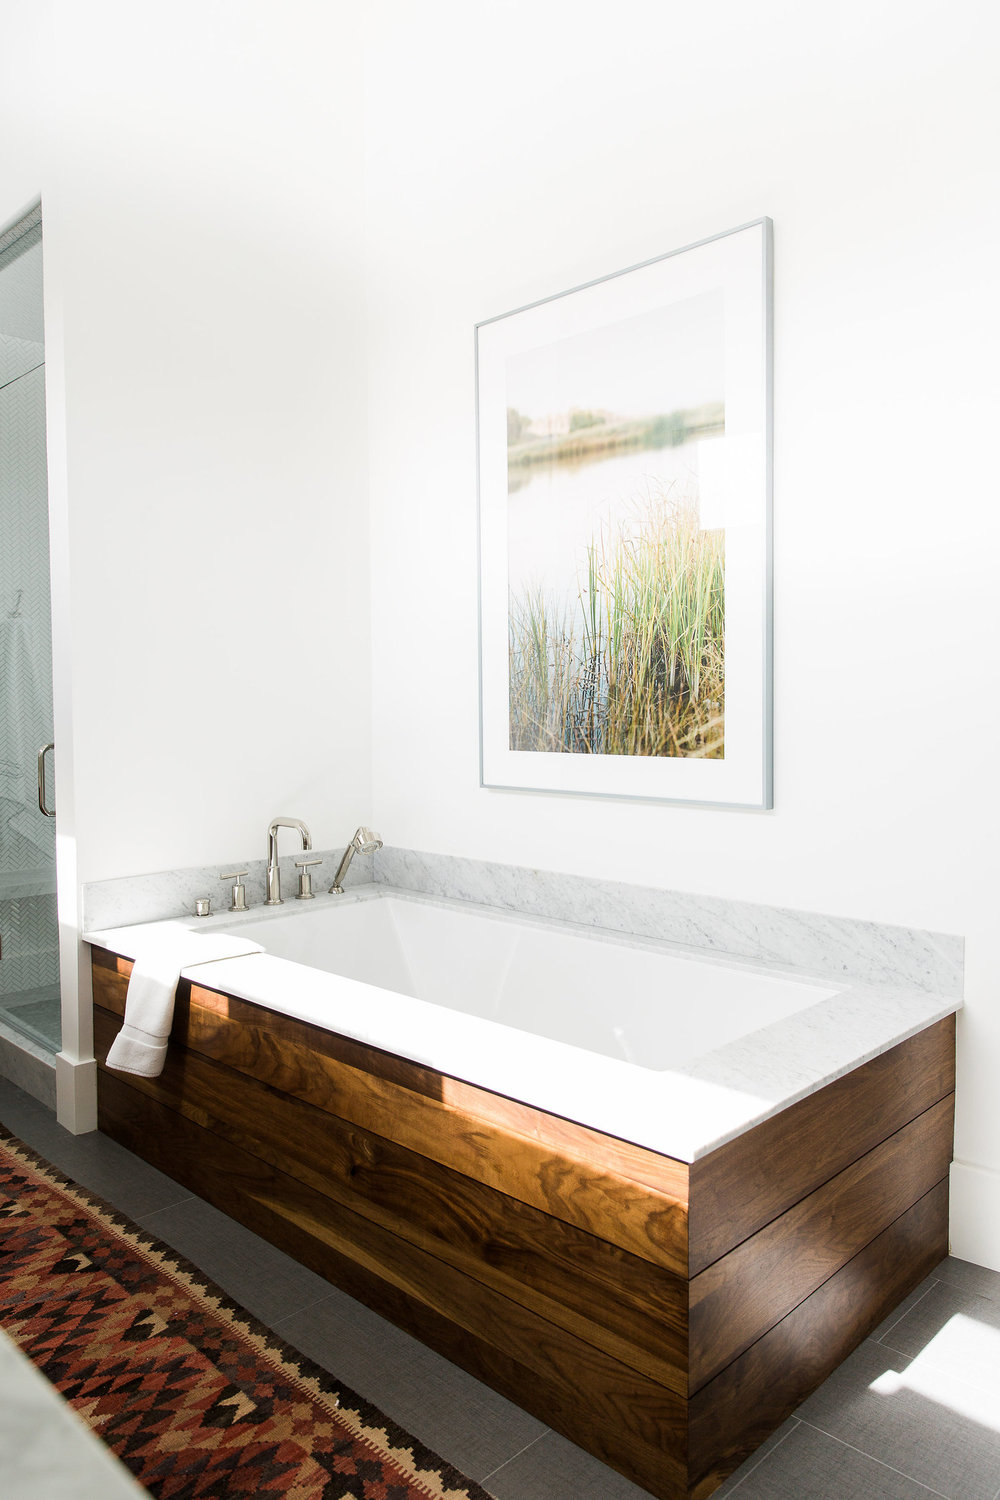 Wood+planking+around+bathtub+||+Studio+McGee.jpg